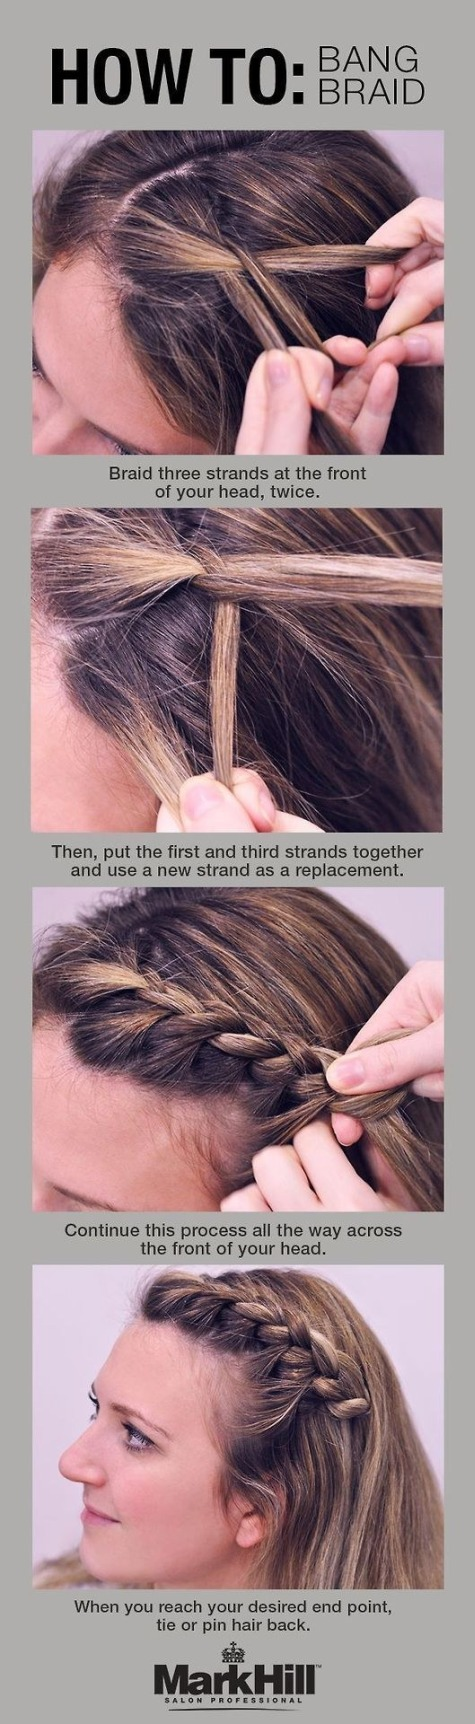 10 great hair hacks for the gym. (great gallery)